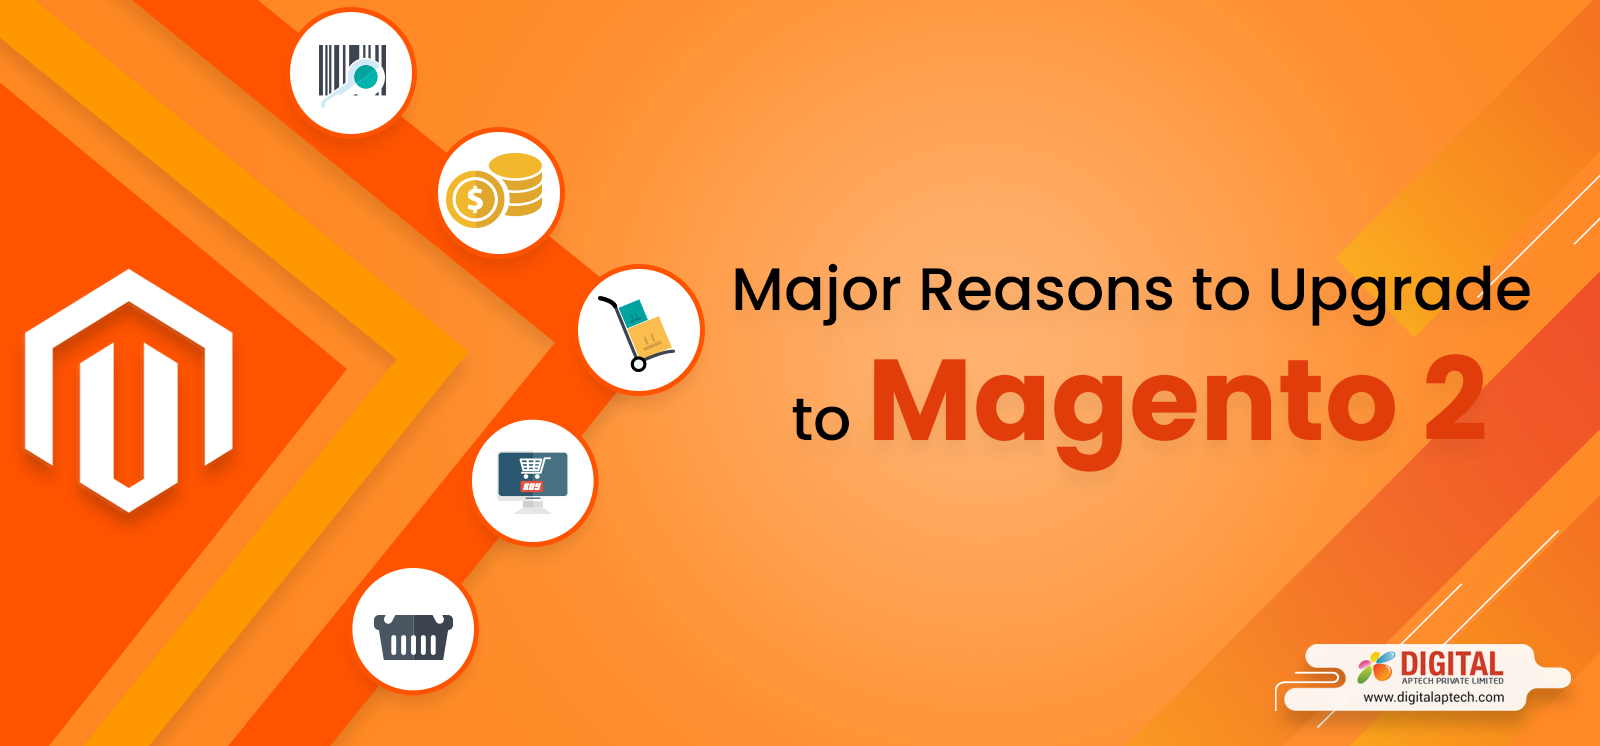 Major Reasons to Upgrade to Magento 2